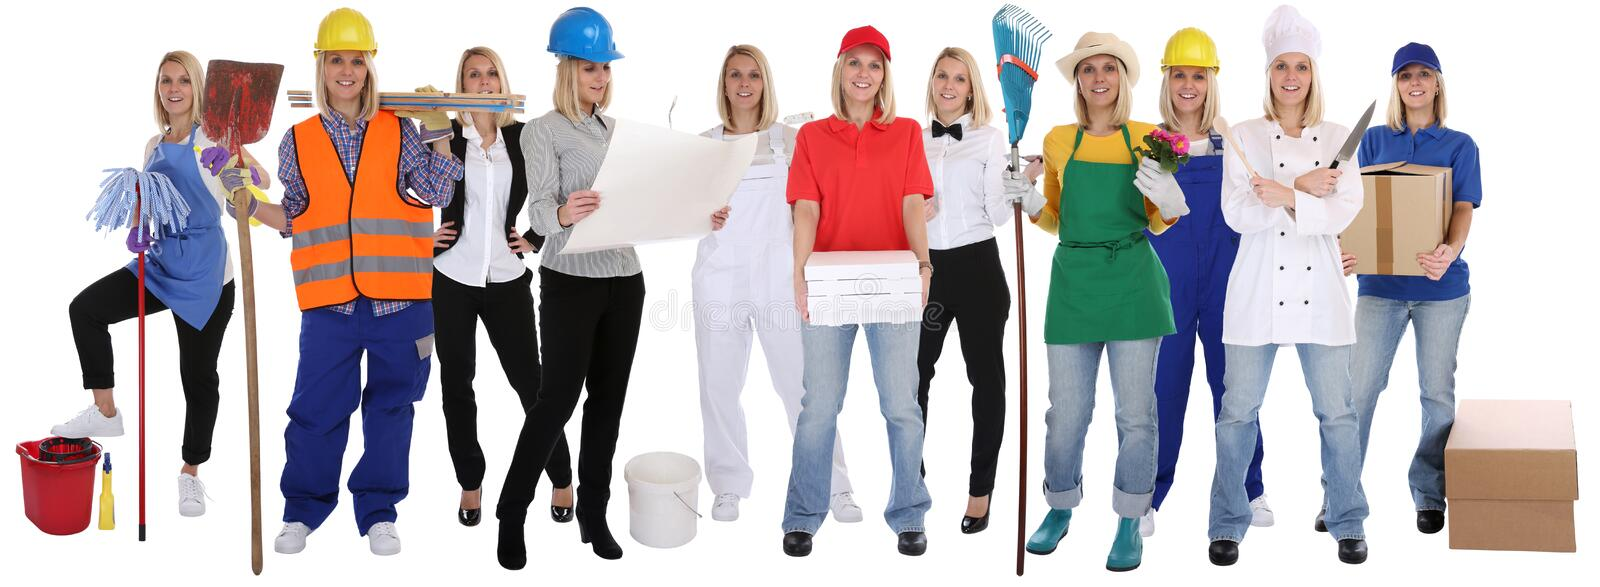 Group of workers professions women professionals standing occupation career isolated royalty free stock photography